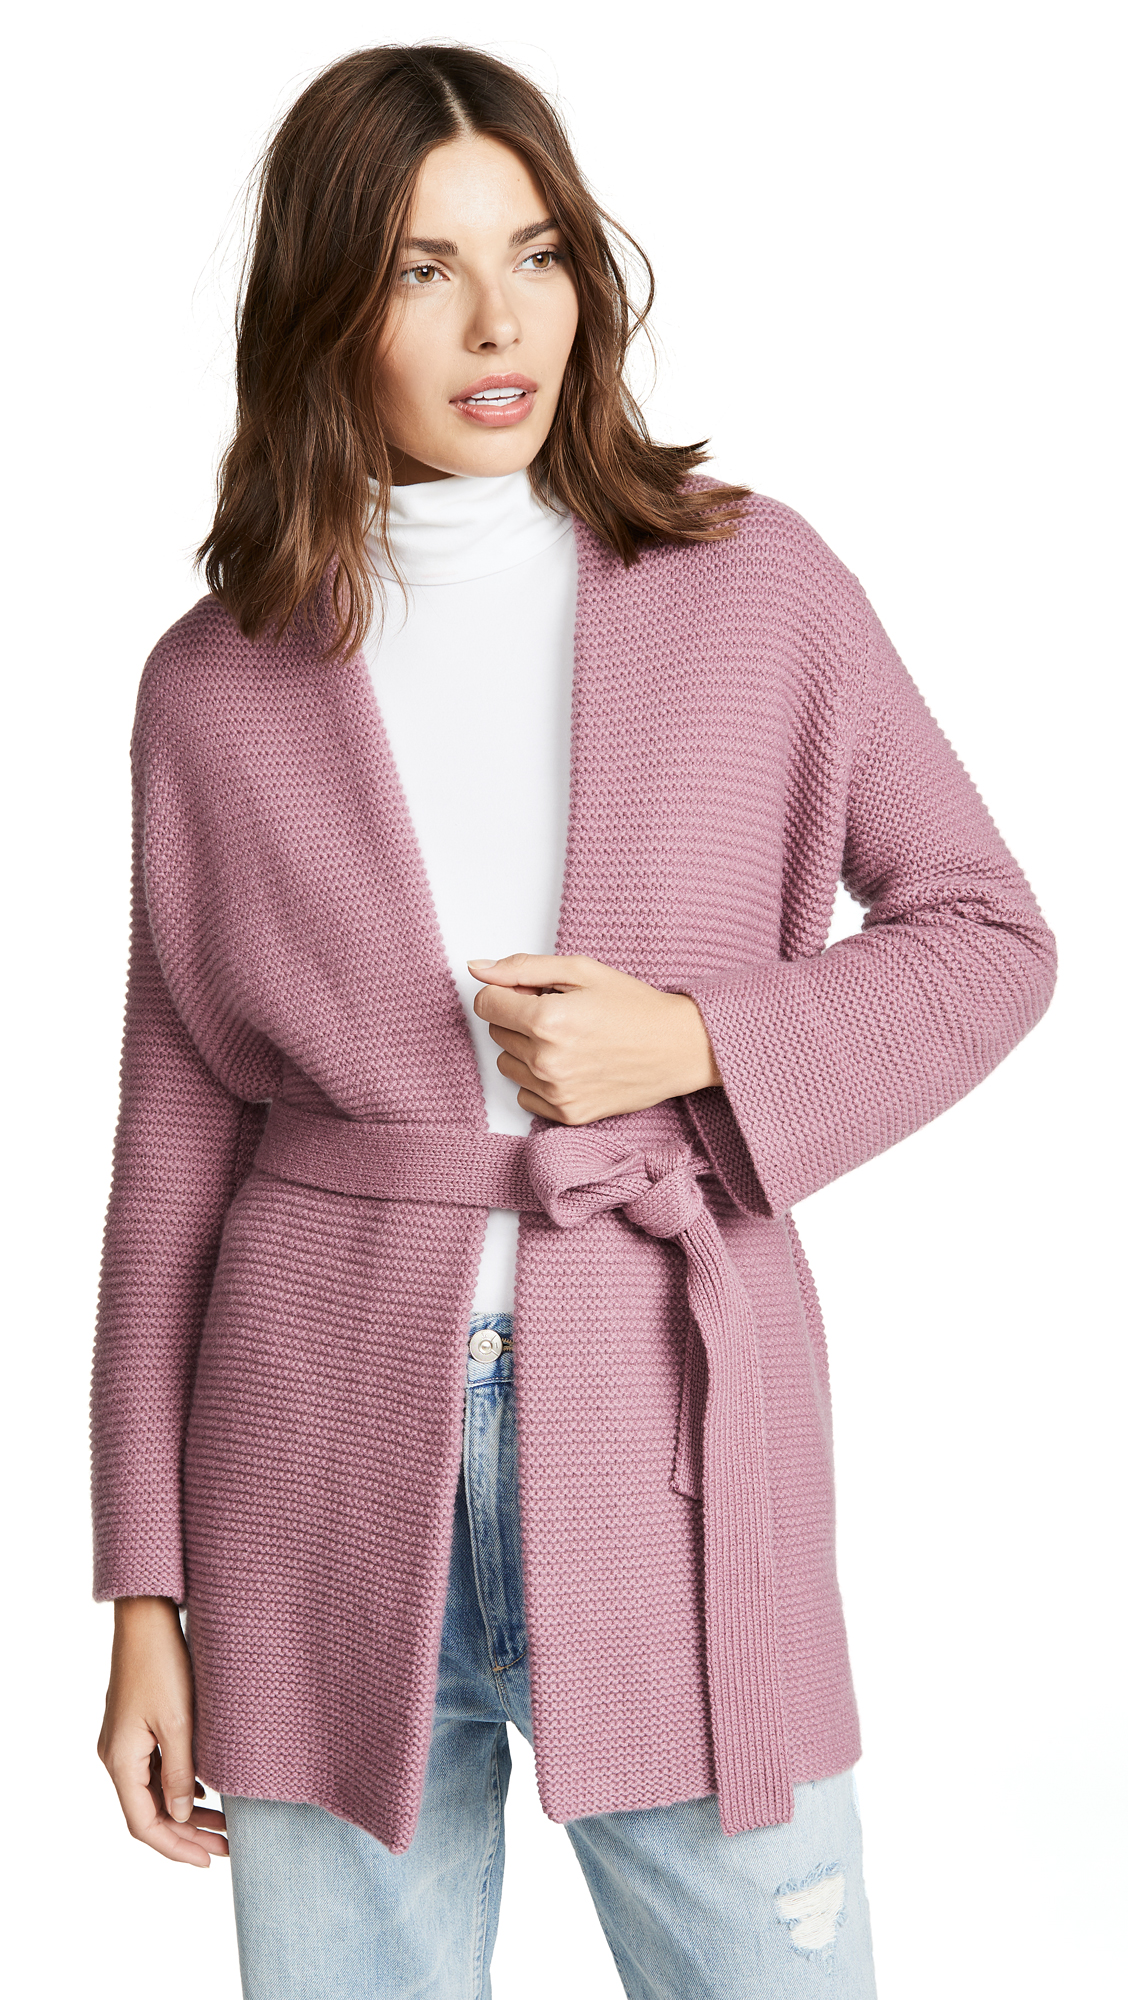 TSE CASHMERE Chunky Cashmere Robe Cardigan With Belt in Muted Mauve